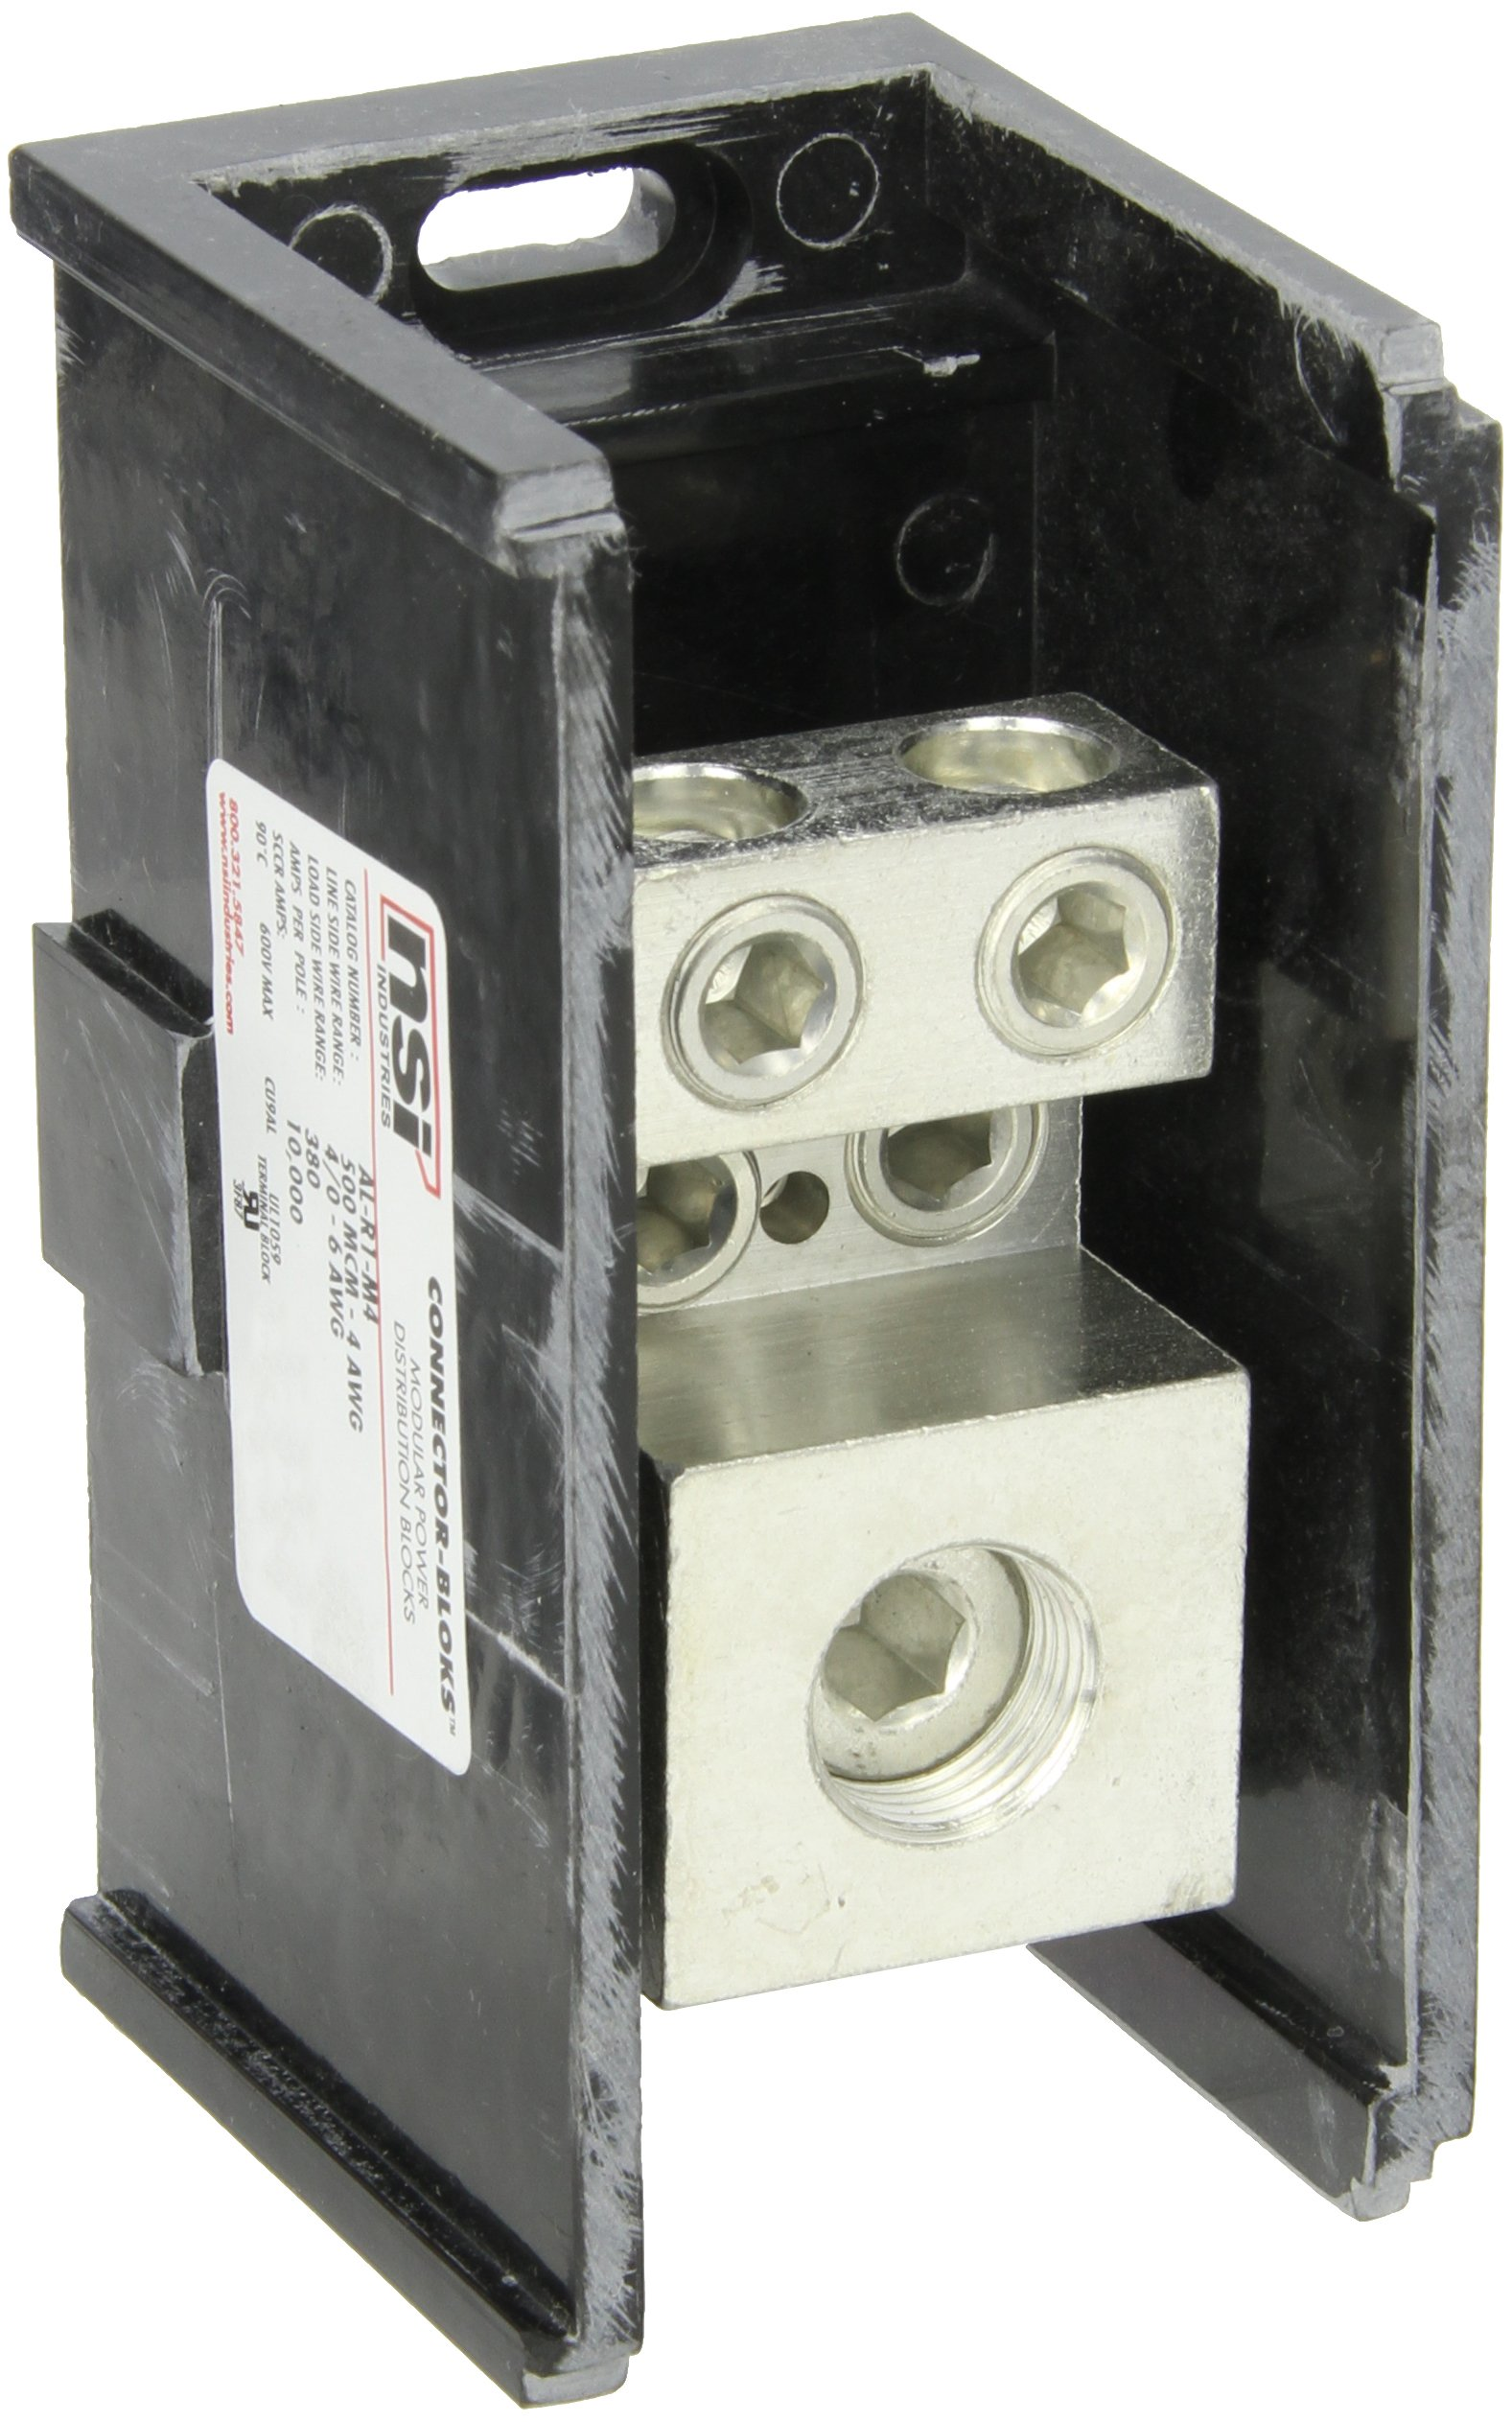 Power Distribution and Terminal Block, Connector Blok - Single Primary - Multiple Secondary, 500MCM-4 AWG Line and 4/0-6 AWG Load Side Configuration, 2.90'' Width, 3.25'' Height, 5.50'' Length